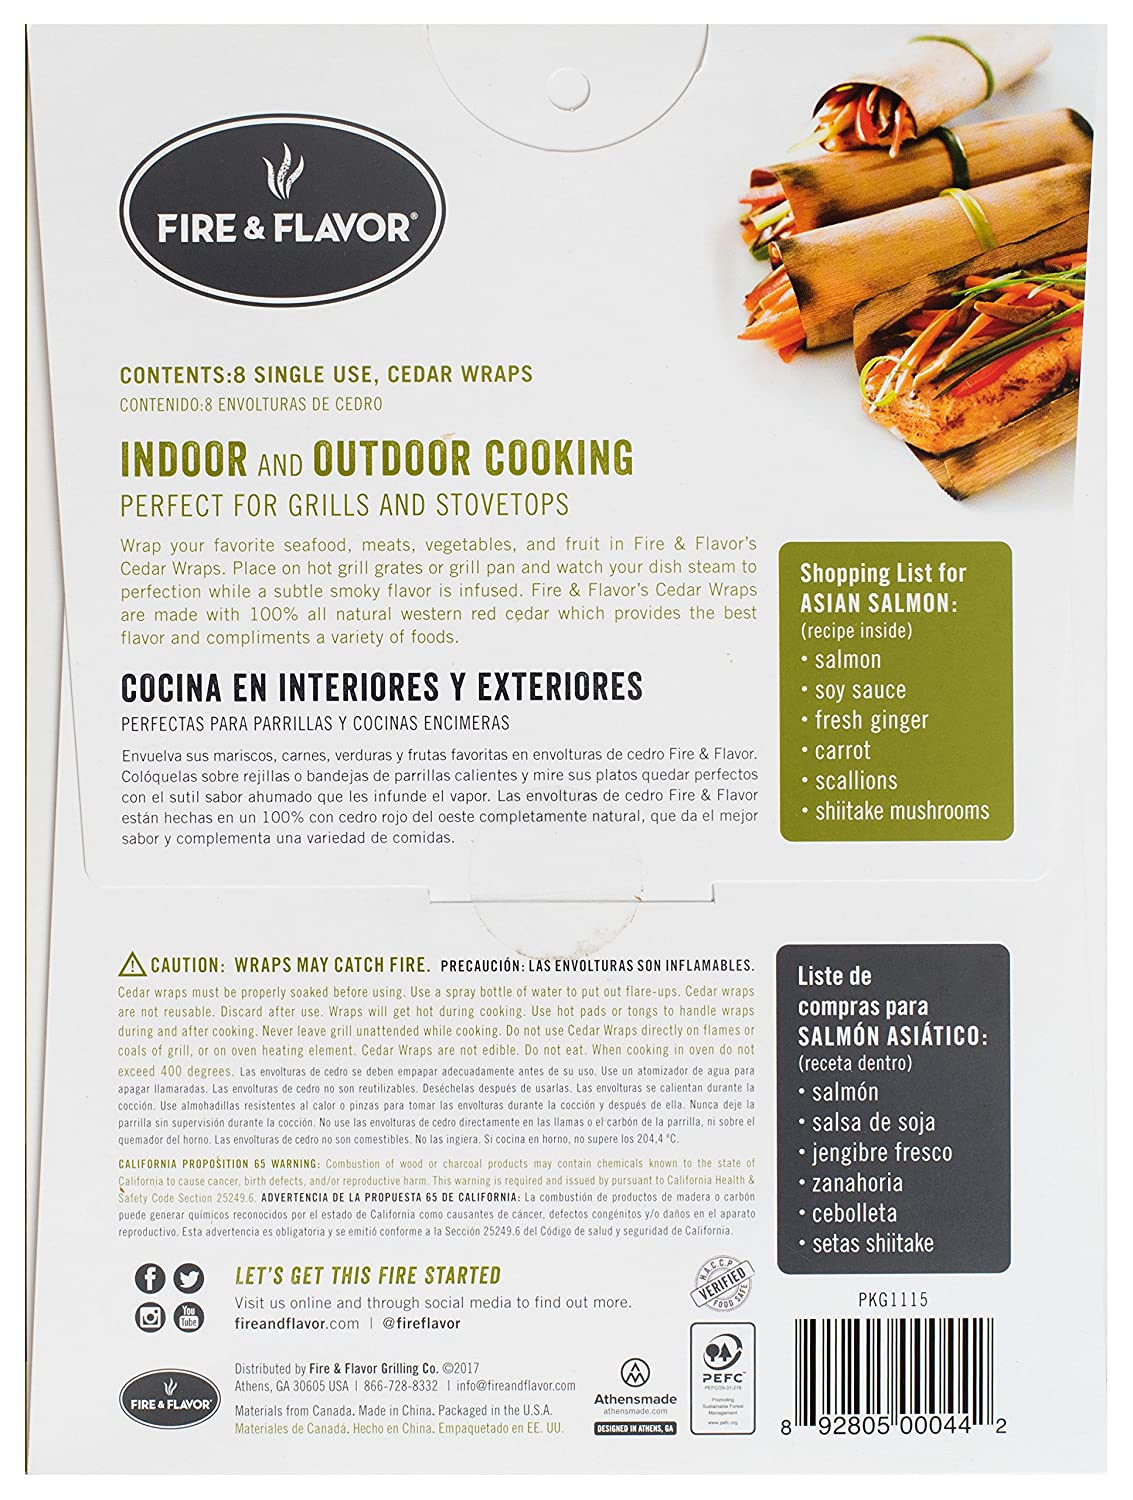 Fire & Flavor Fire & Flavor 6 x 7.25 Inch Western Red Cedar Wraps (8 Papers), 2-Ounce Packages (Pack of 6): Amazon.com: Grocery & Gourmet Food